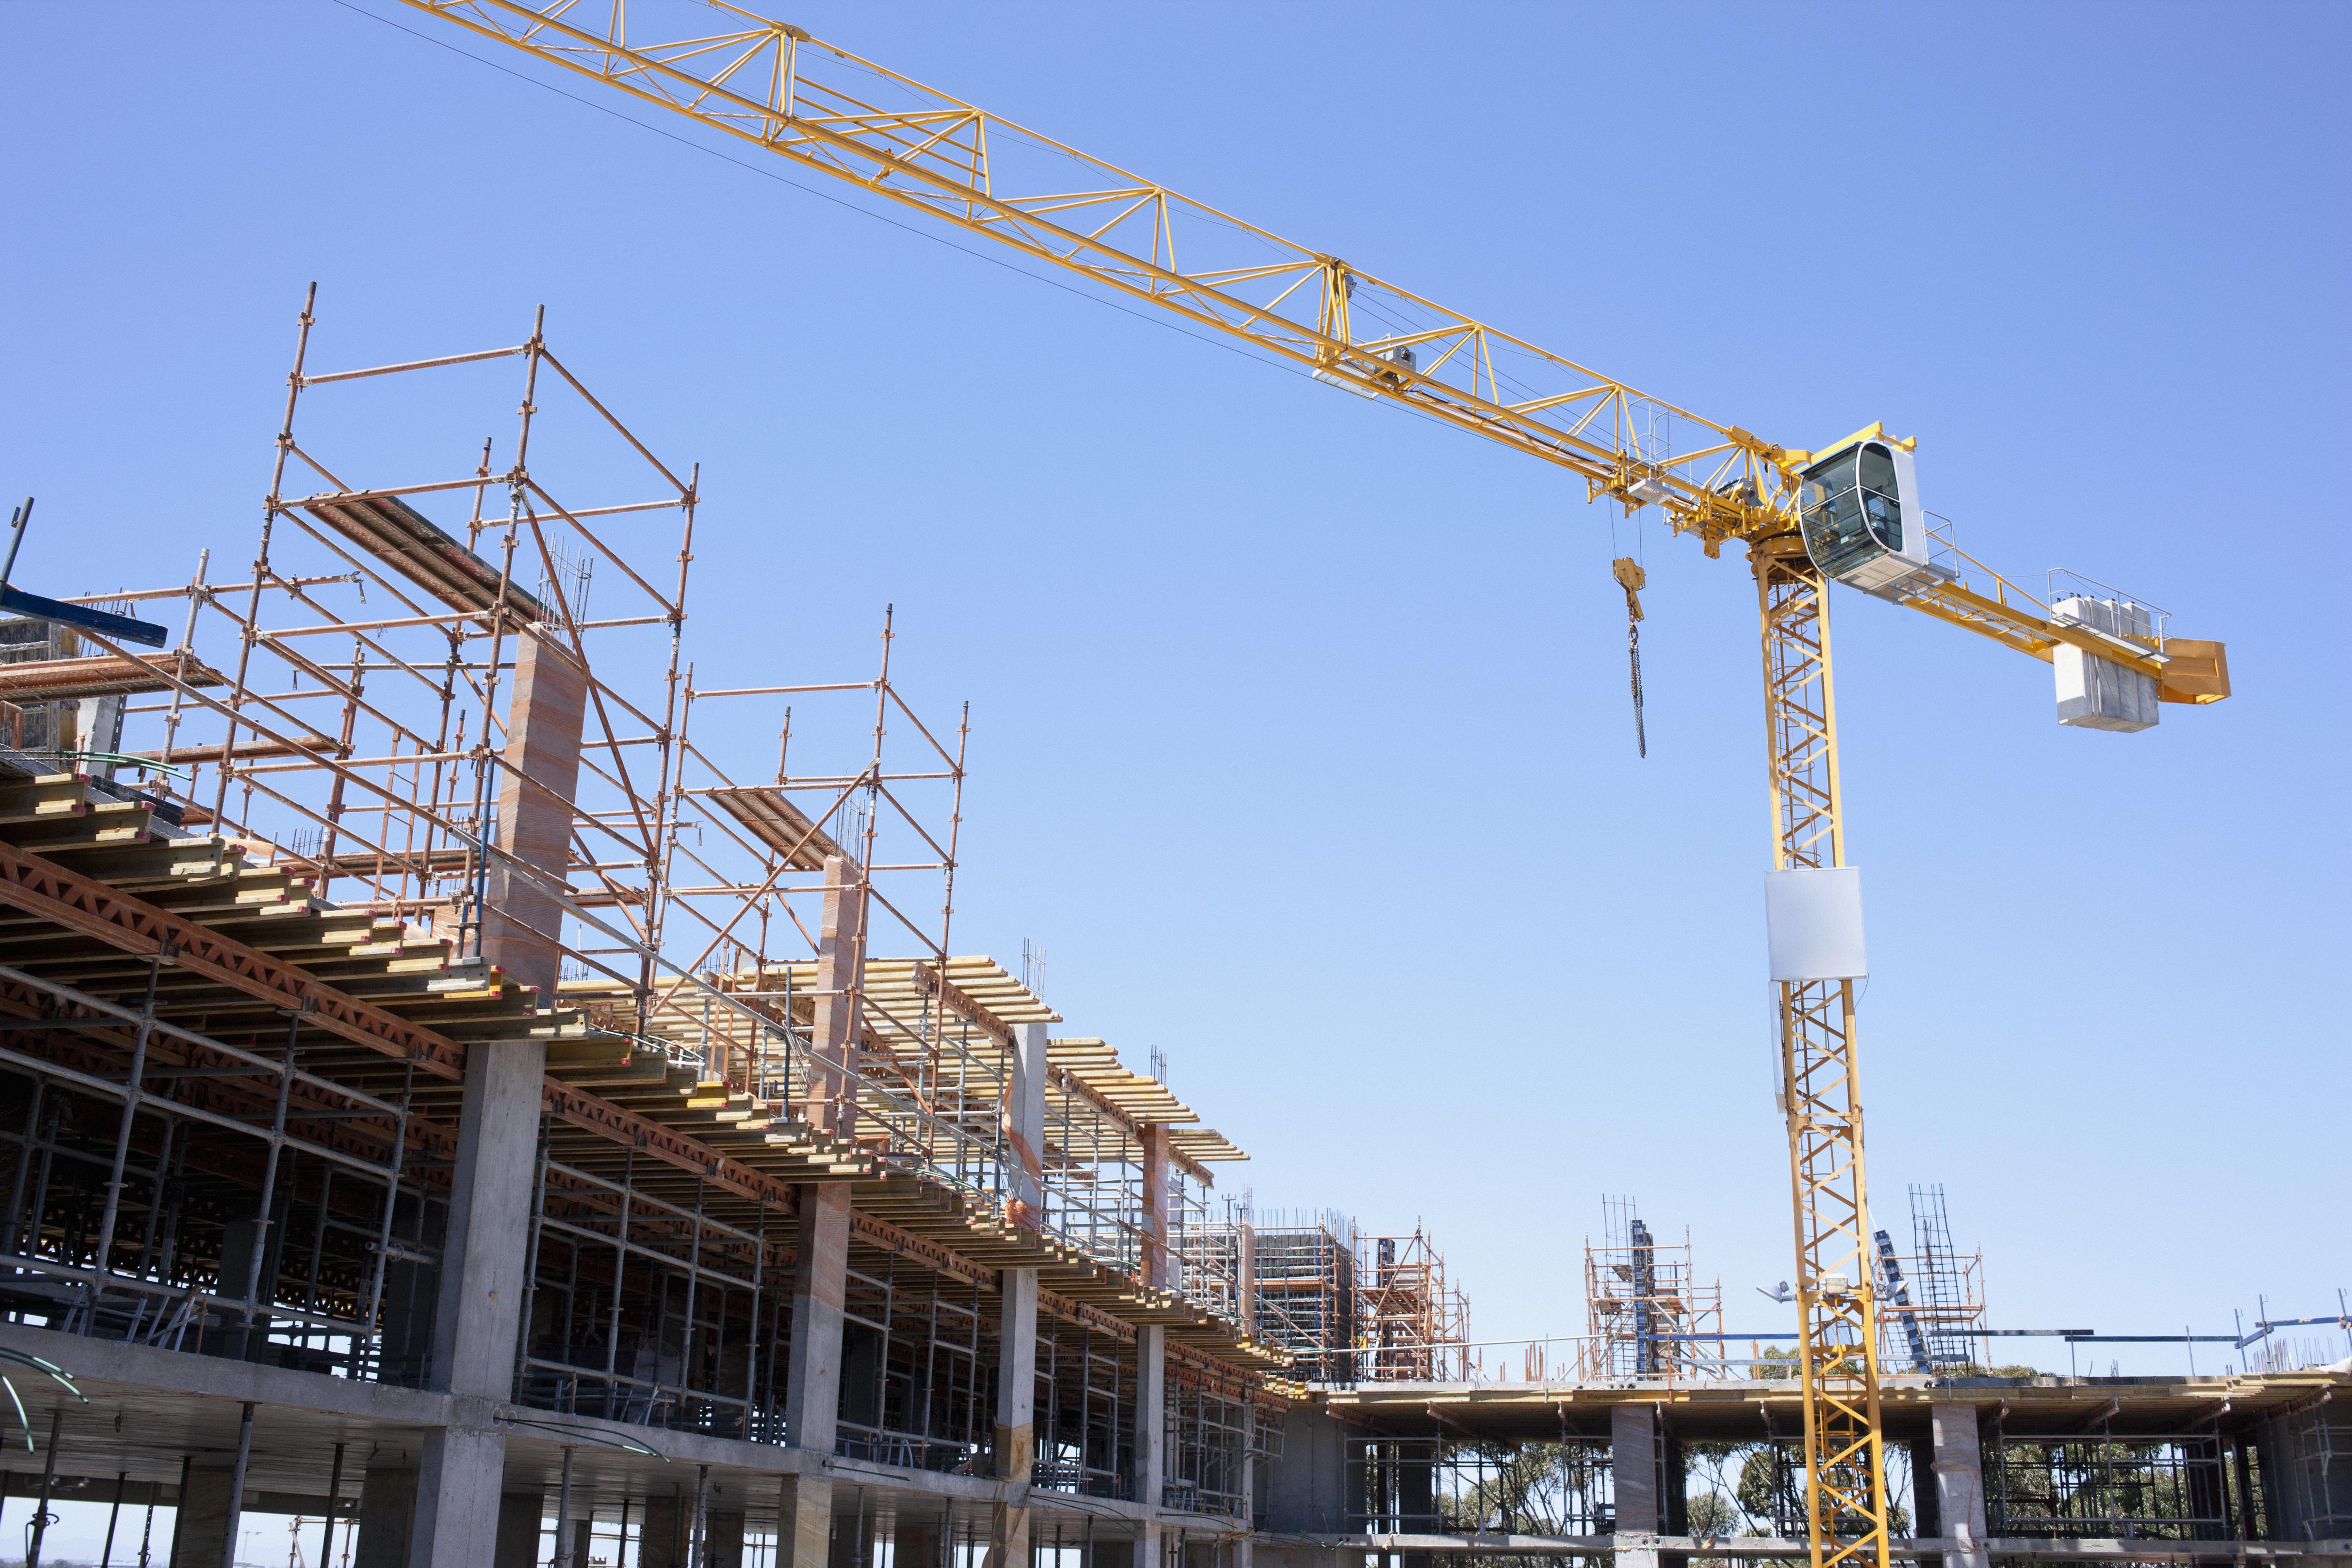 Crane on construction site